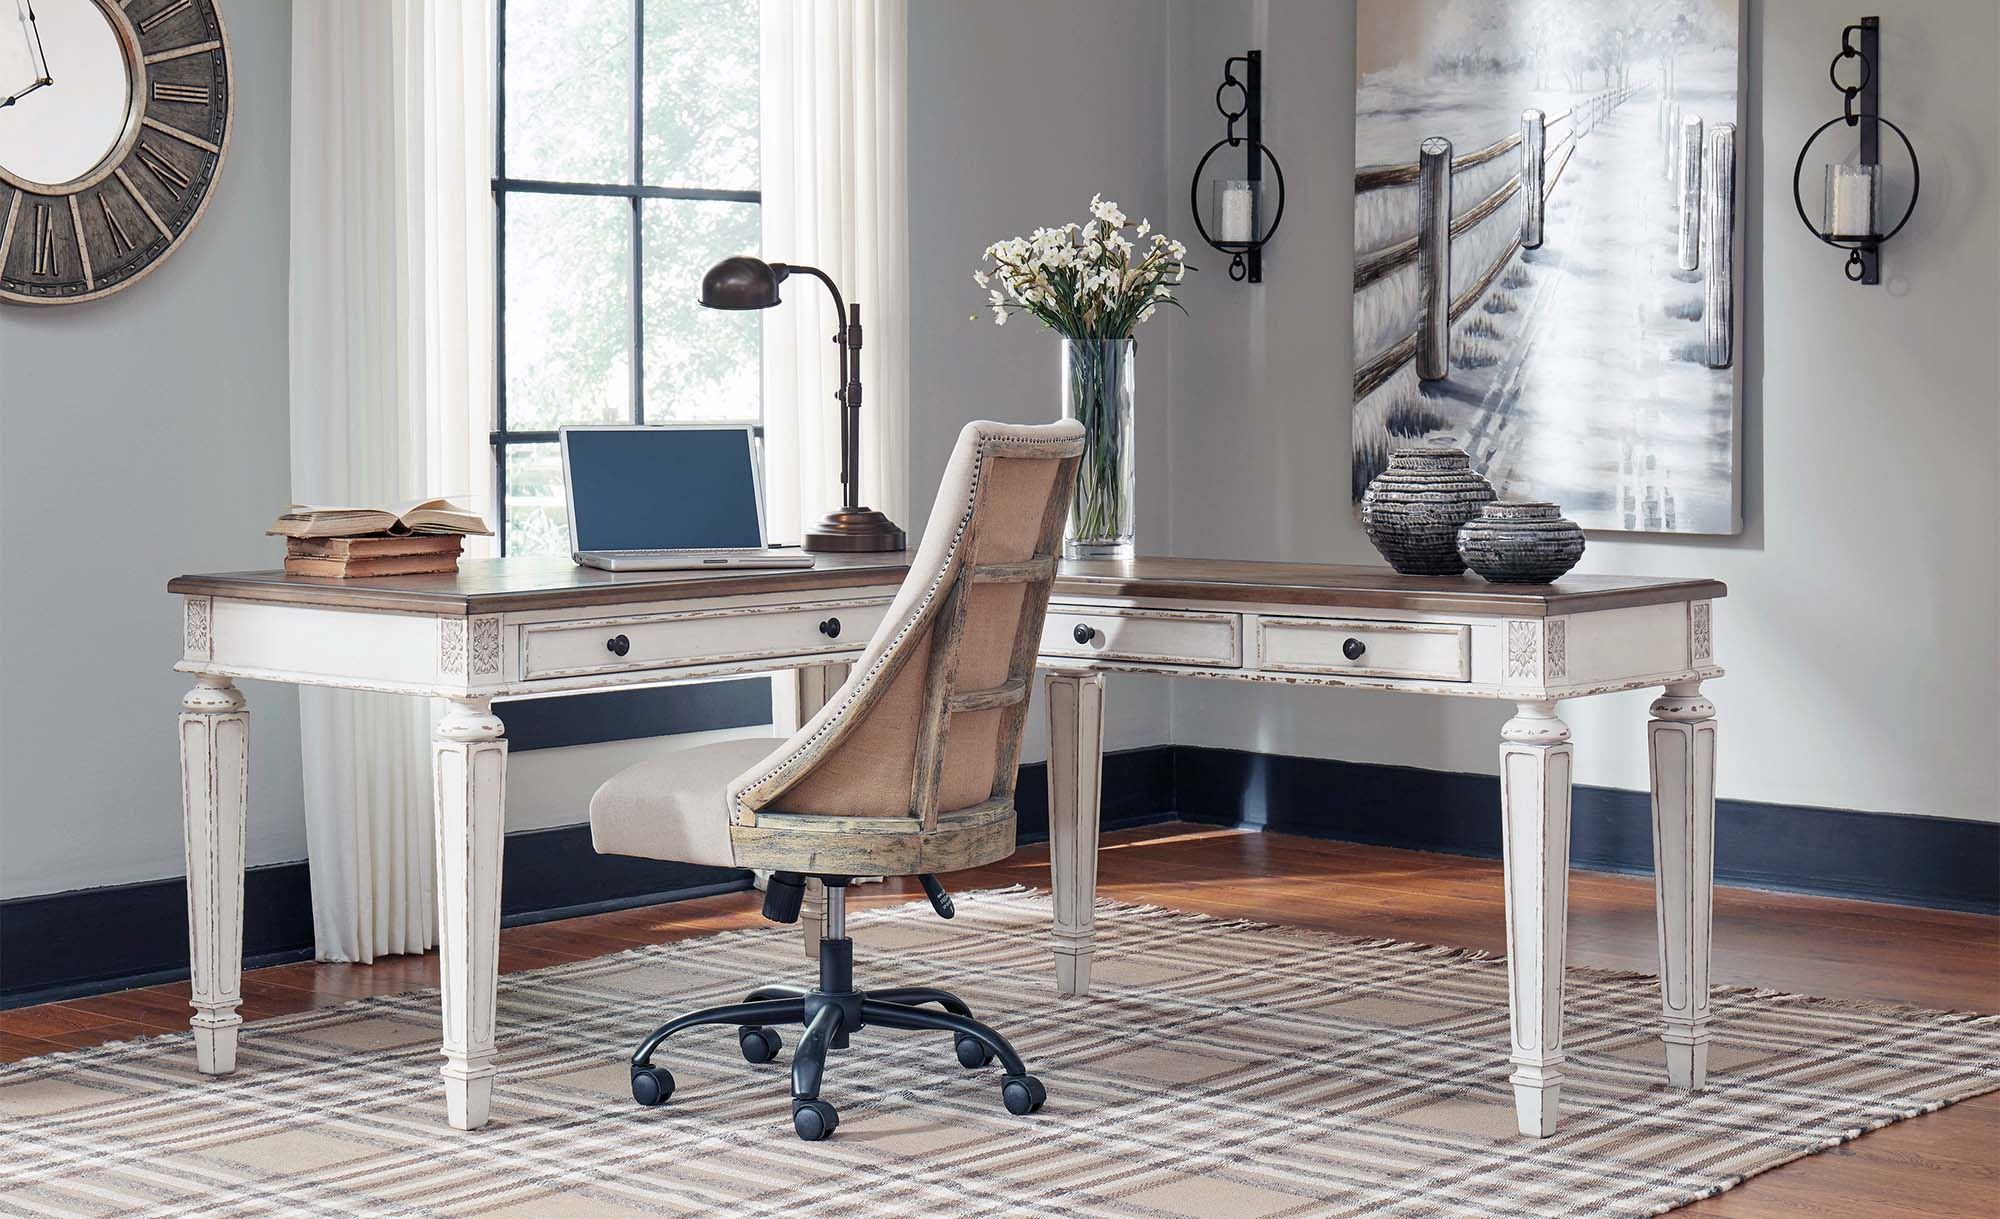 flex room office ideas white desk with white chair checkered area rug